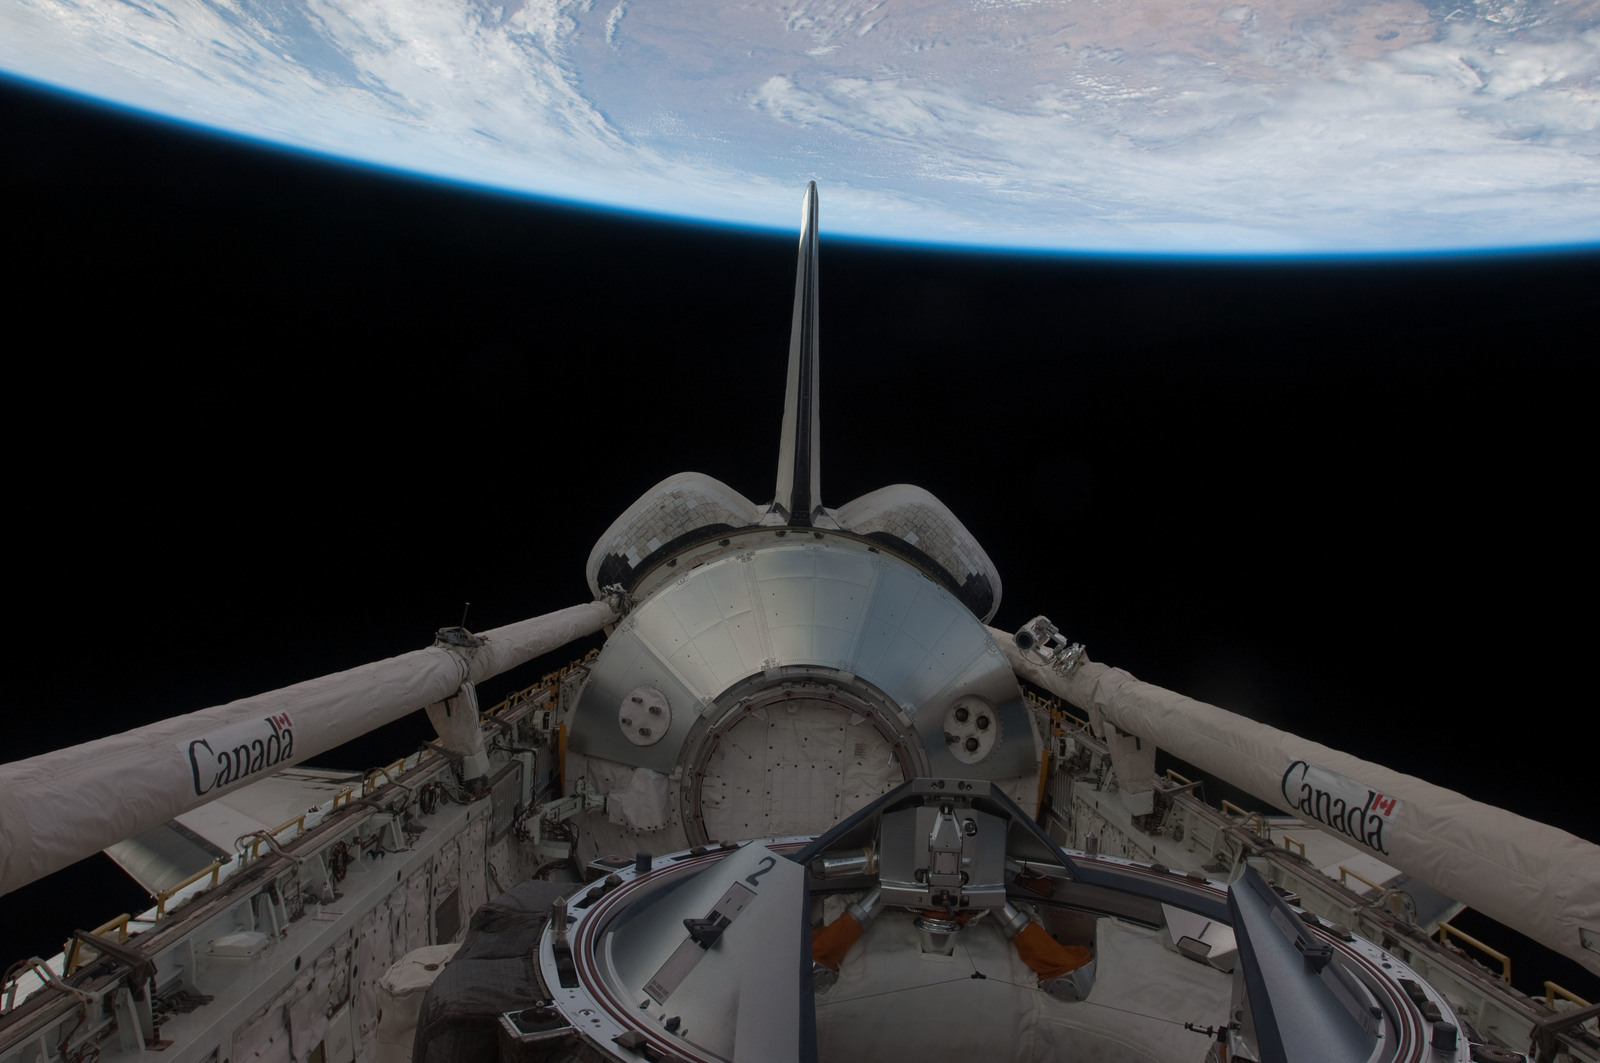 S126E026987 - STS-126 - Payload Bay of Endeavour